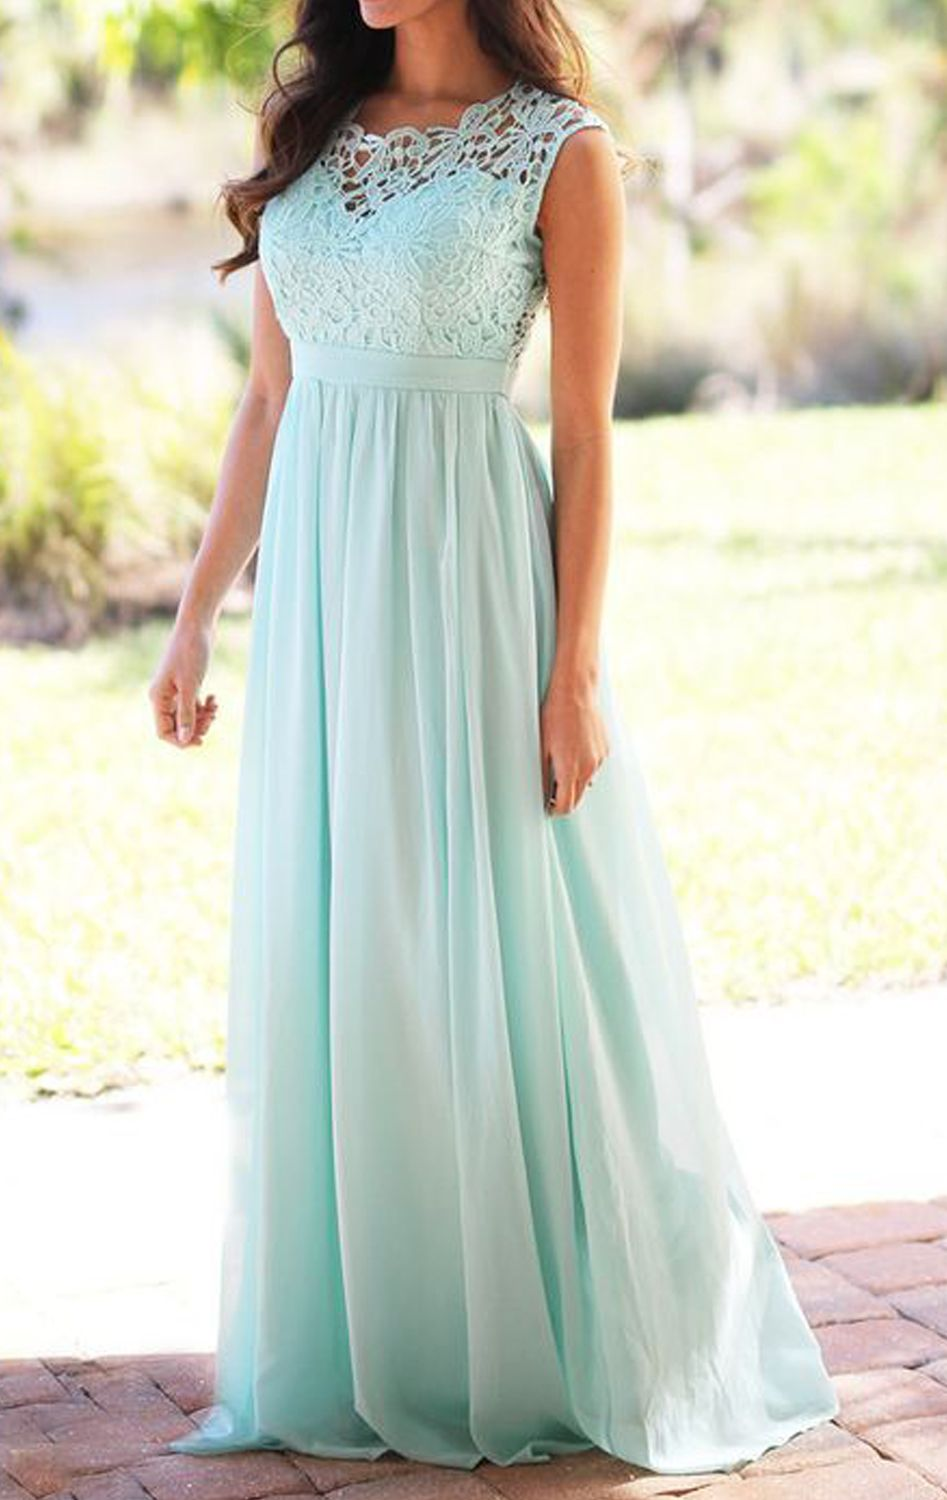 Lace chiffon long bridesmaid dress elegant simple pink prom gown